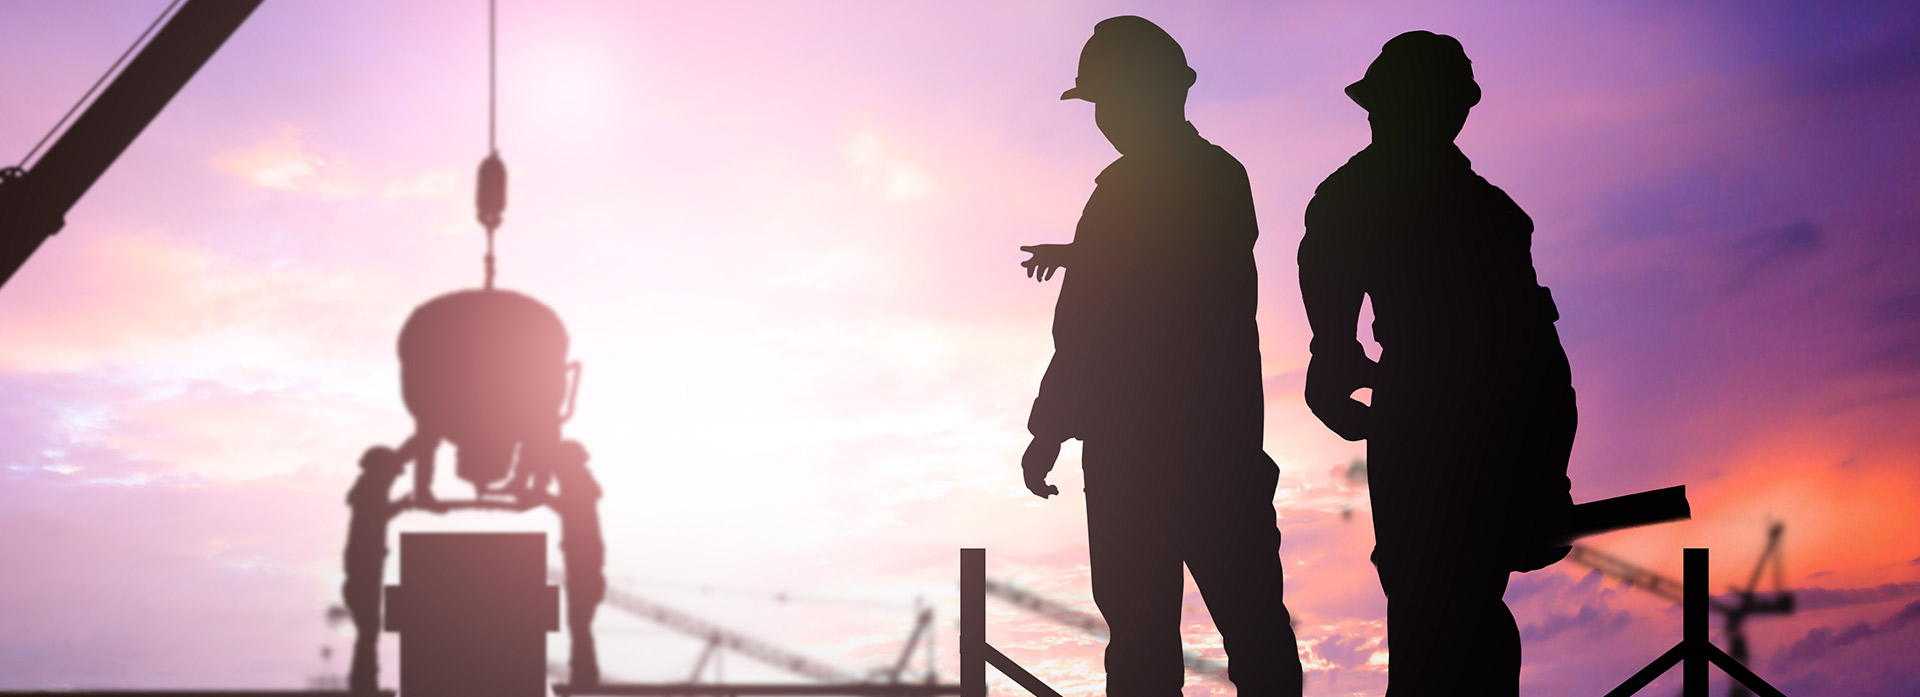 construction workers with a purple sunset background